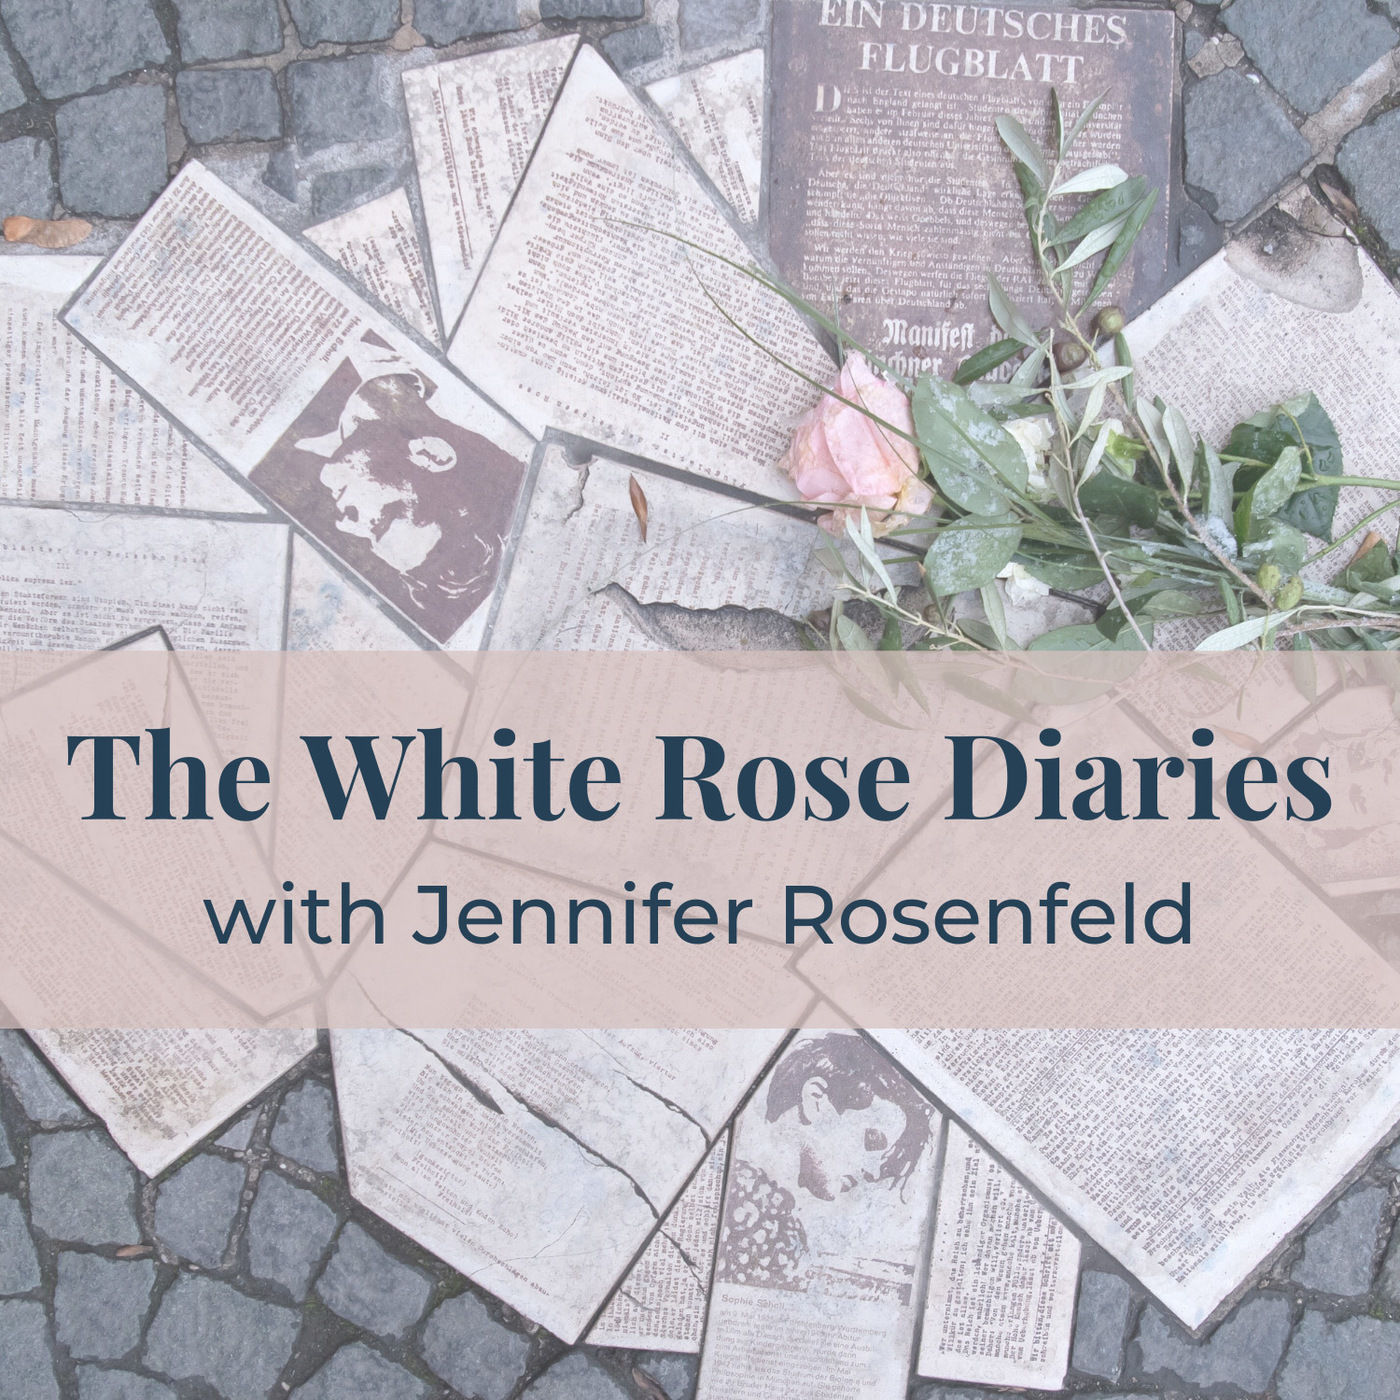 The white rose diaries